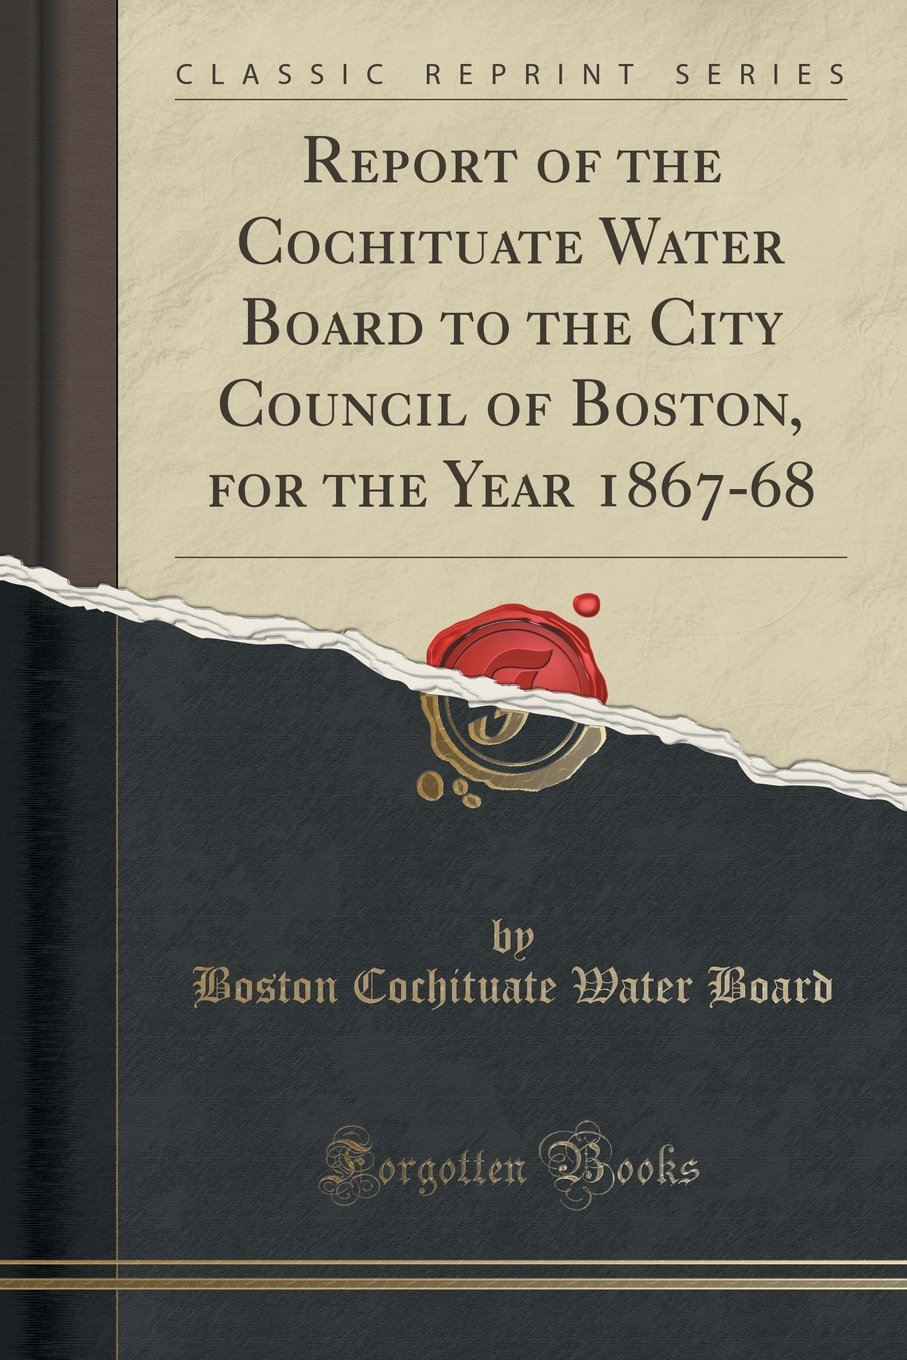 Download Report of the Cochituate Water Board to the City Council of Boston, for the Year 1867-68 (Classic Reprint) pdf